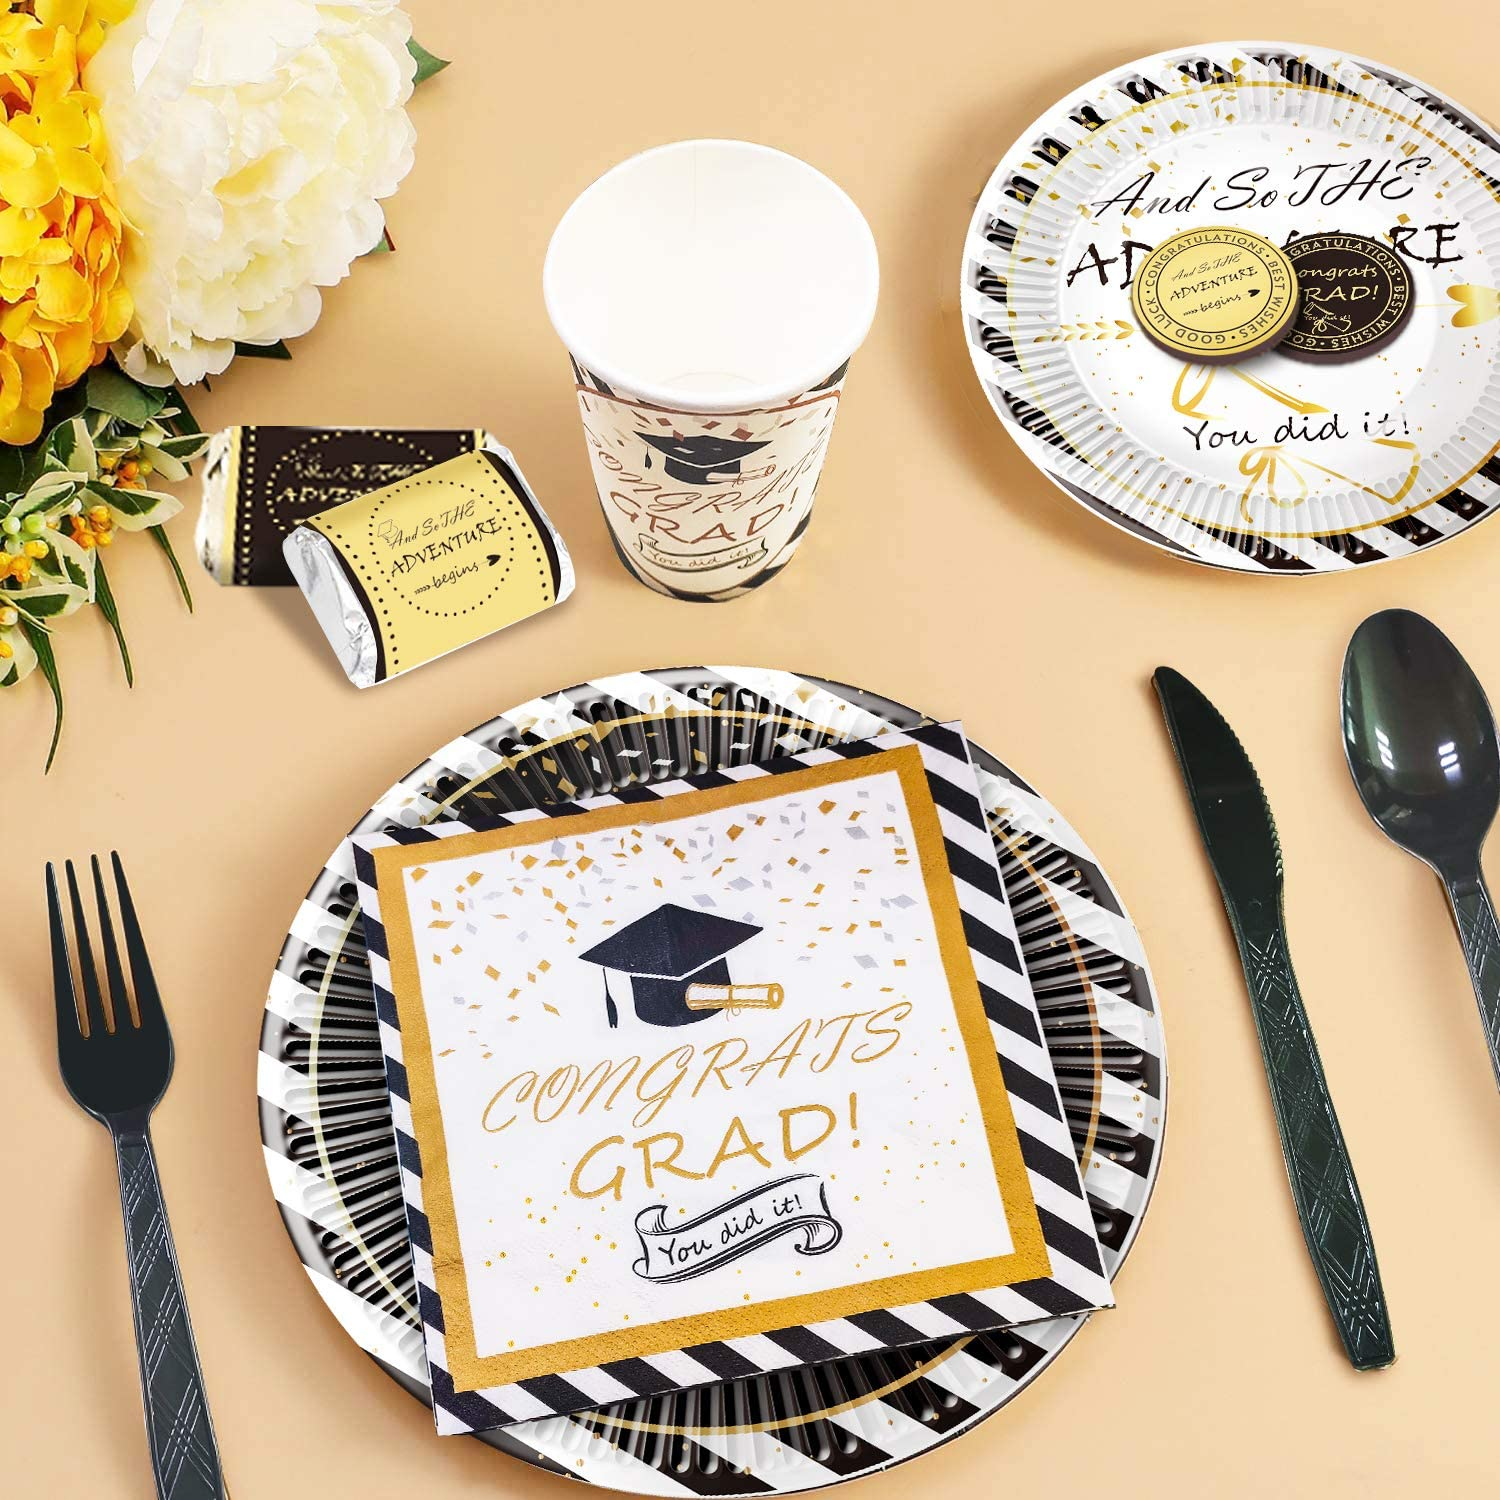 Balloons Cups Cake Toppers Graduation Decorations 2021- Graduation Party Supplies Include Banner Tablecloth Cutlery Chocolate Stickers Plates Serves 16 Napkins Centerpiece Bottle Labels